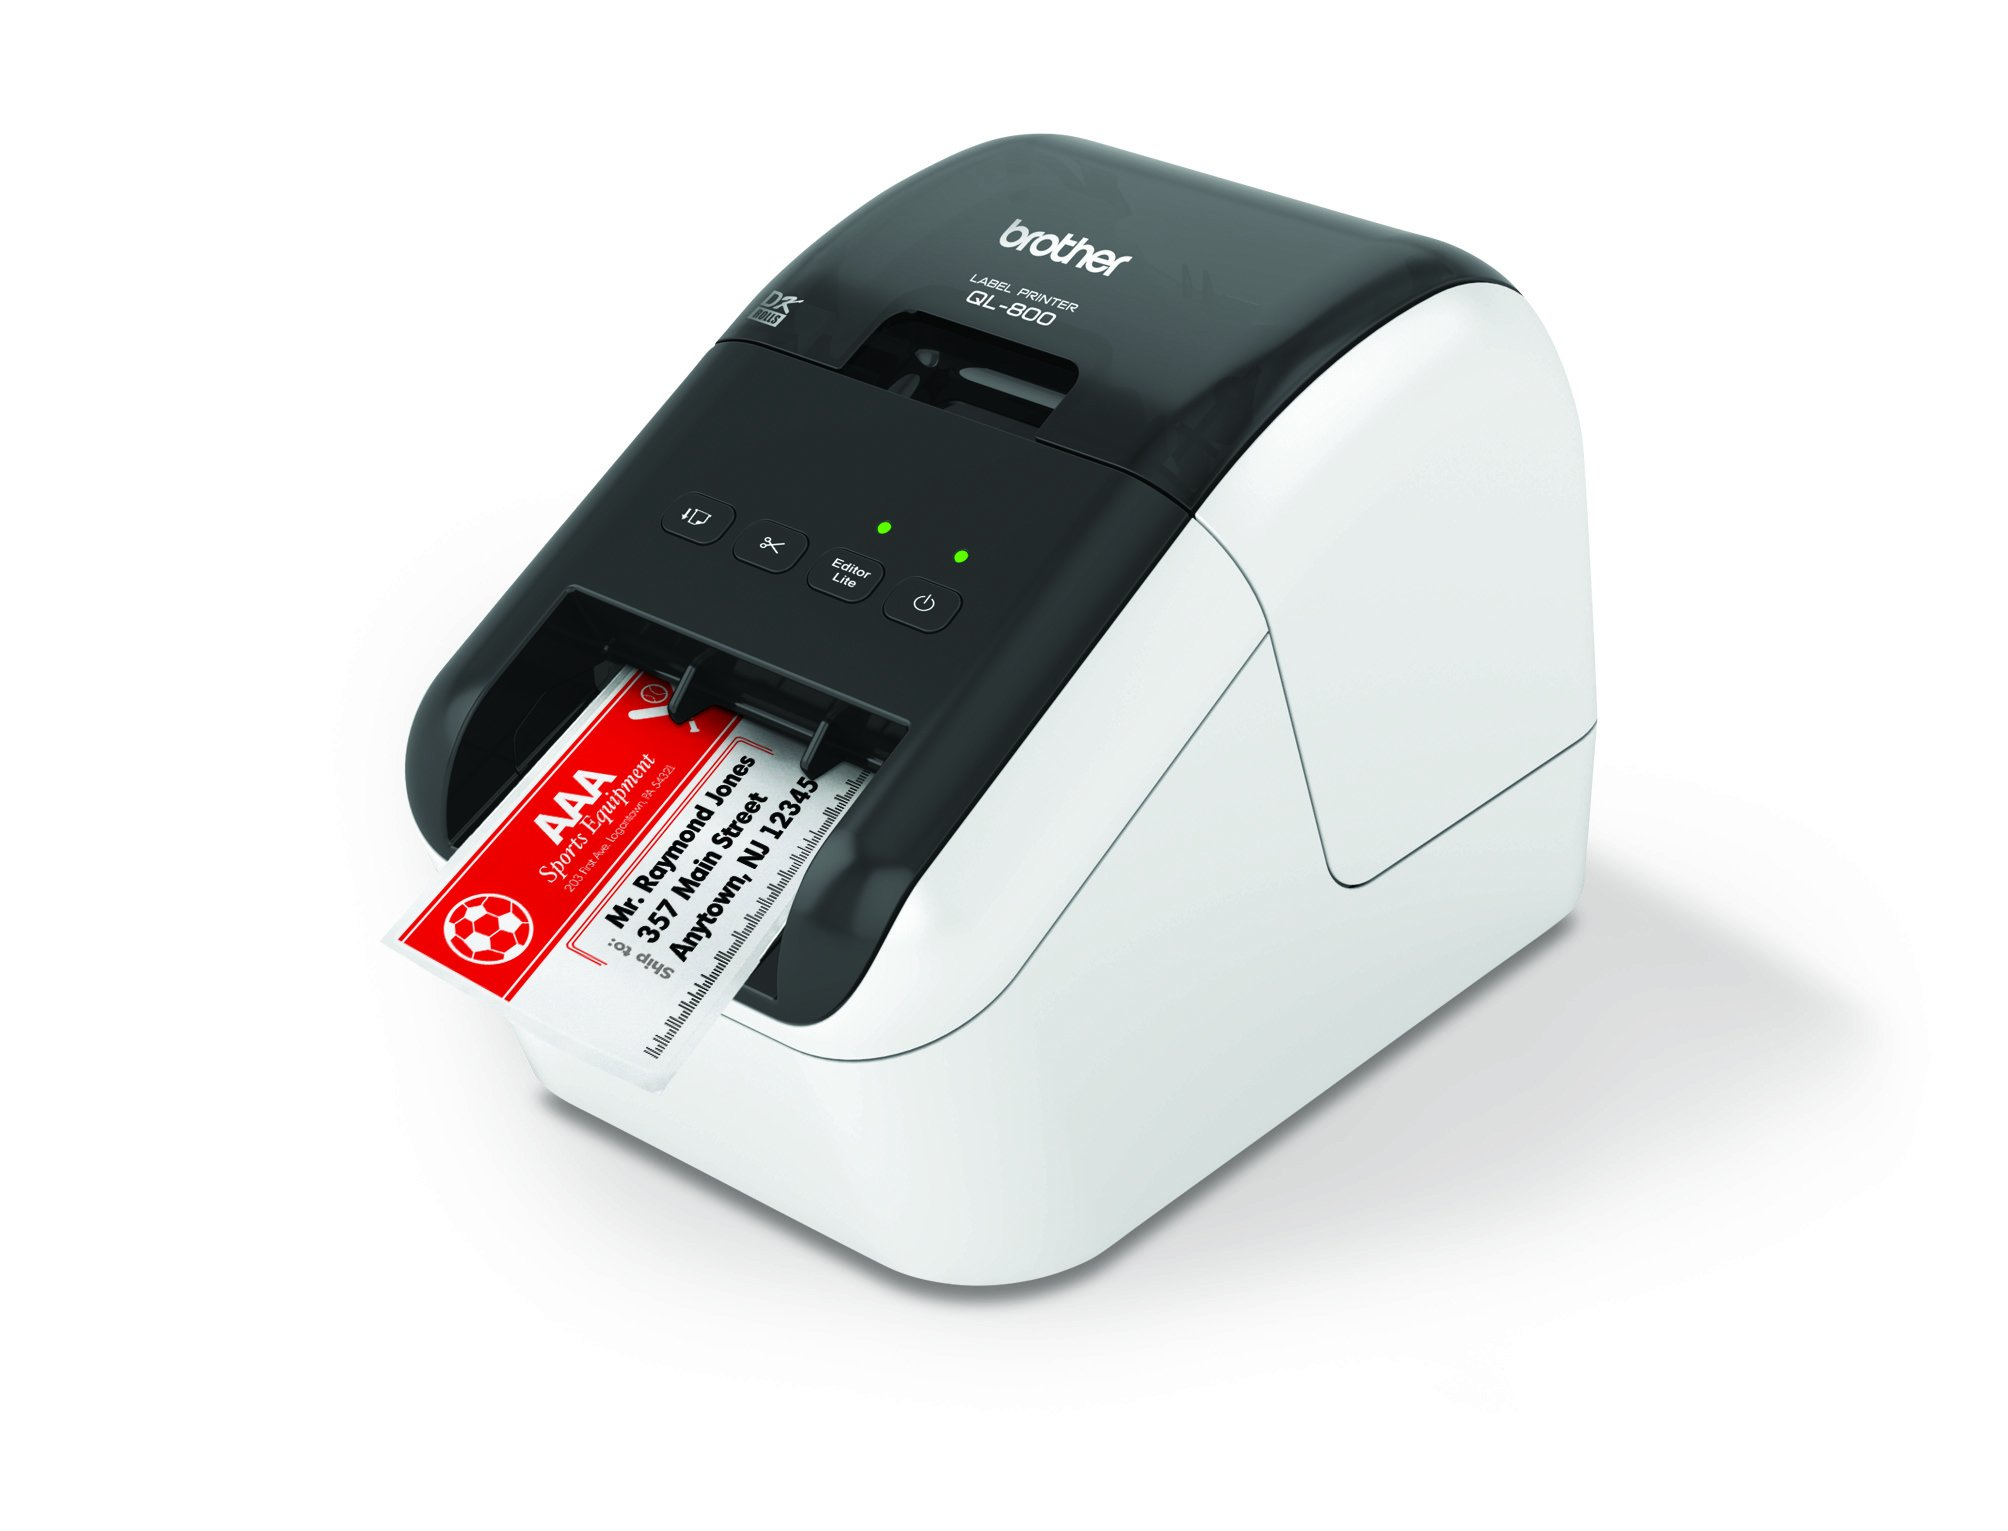 Brother ql 800 high speed professional label printer for Brother label printer templates